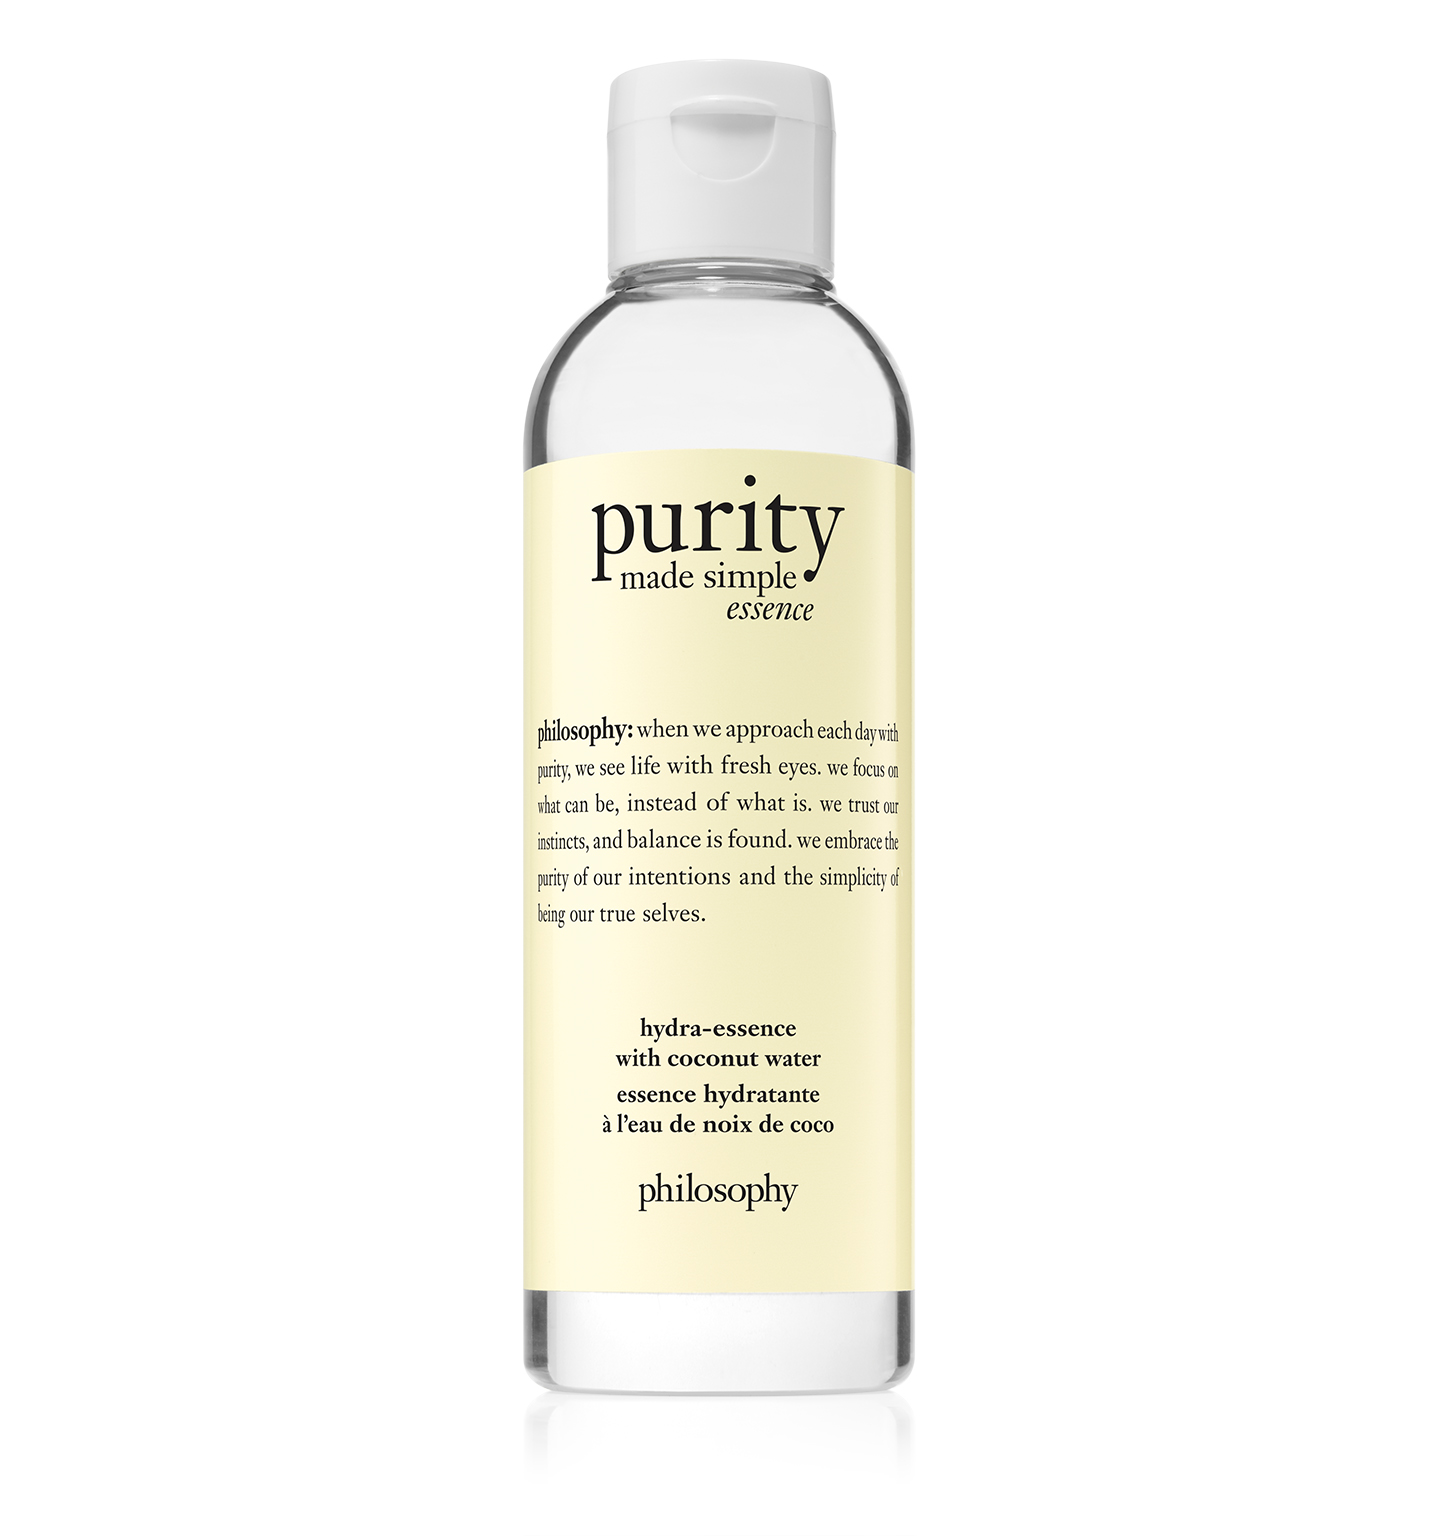 purity made simple hydra-essence with coconut water